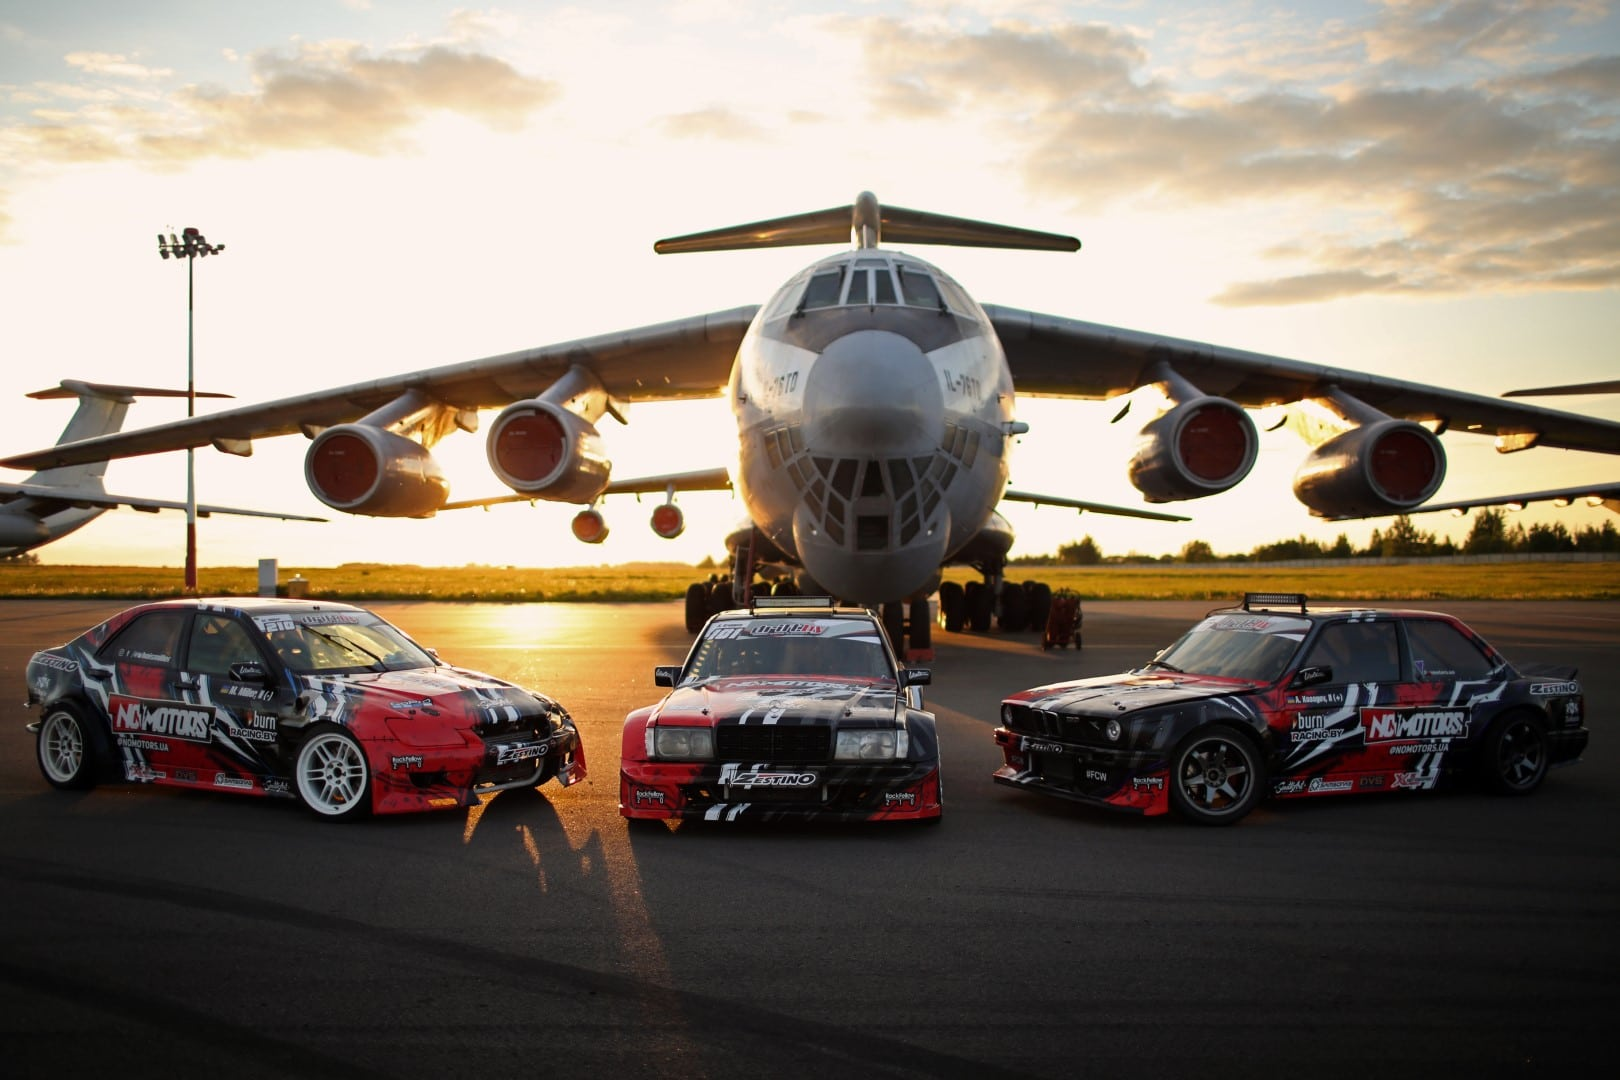 NoMotors Drift Team next to IL-76 Giedrius Matulaitis matulaitis.lt